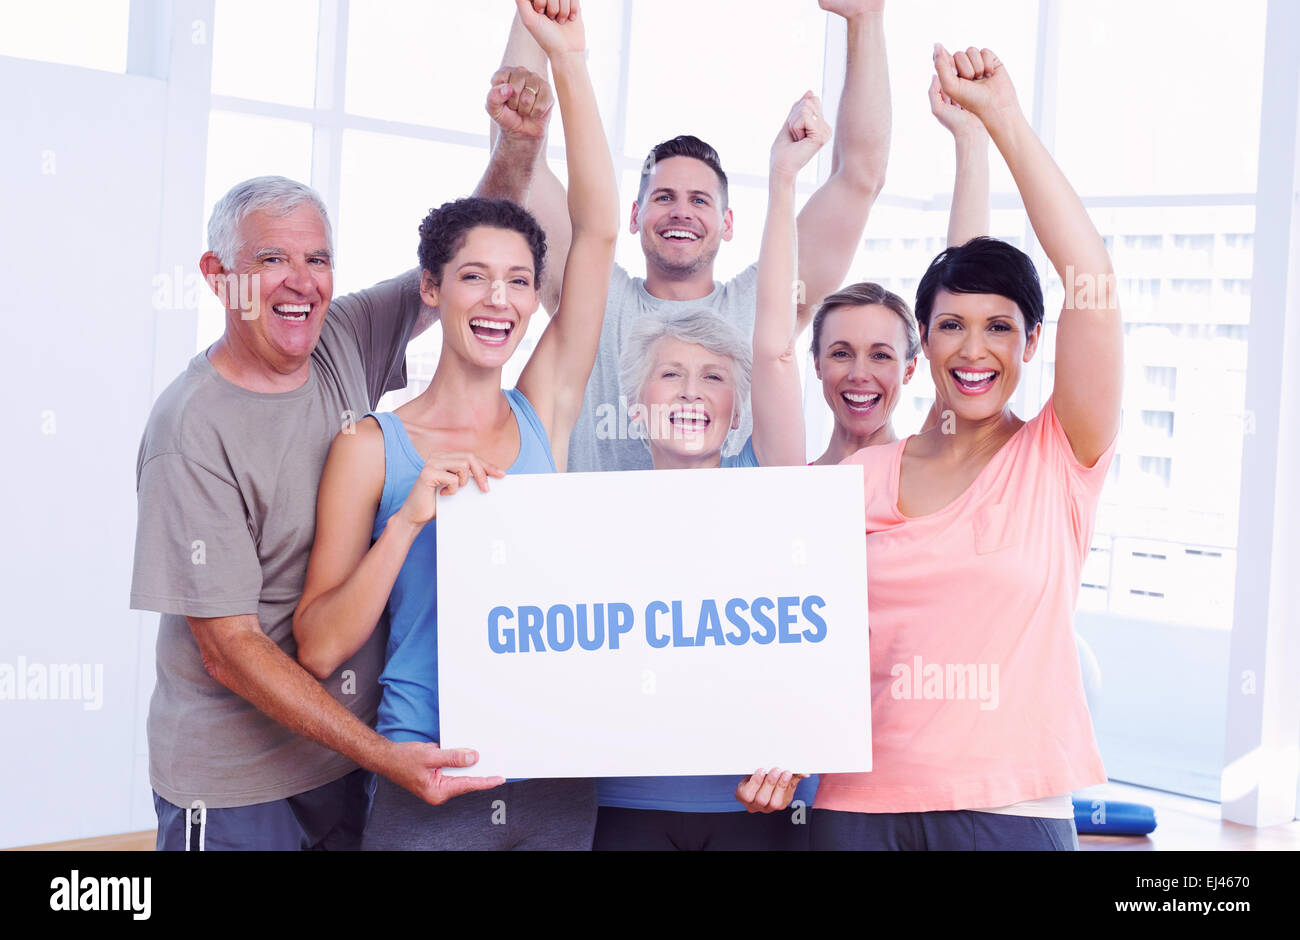 Group classes against portrait of happy fit people holding blank board - Stock Image